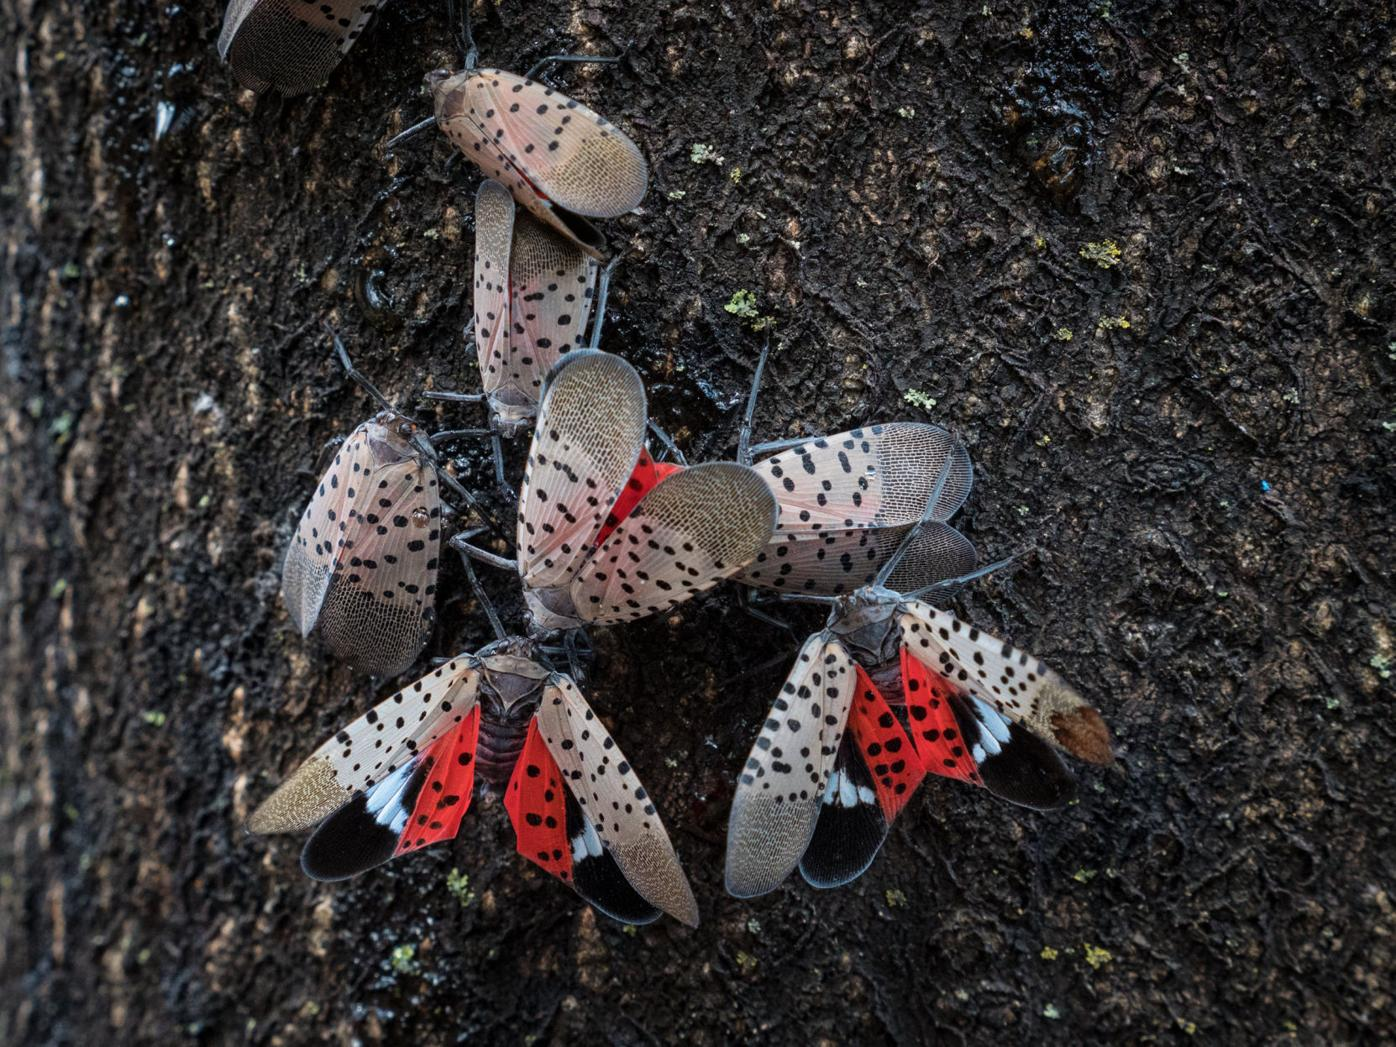 Ready or not, here comes the spotted lanternfly